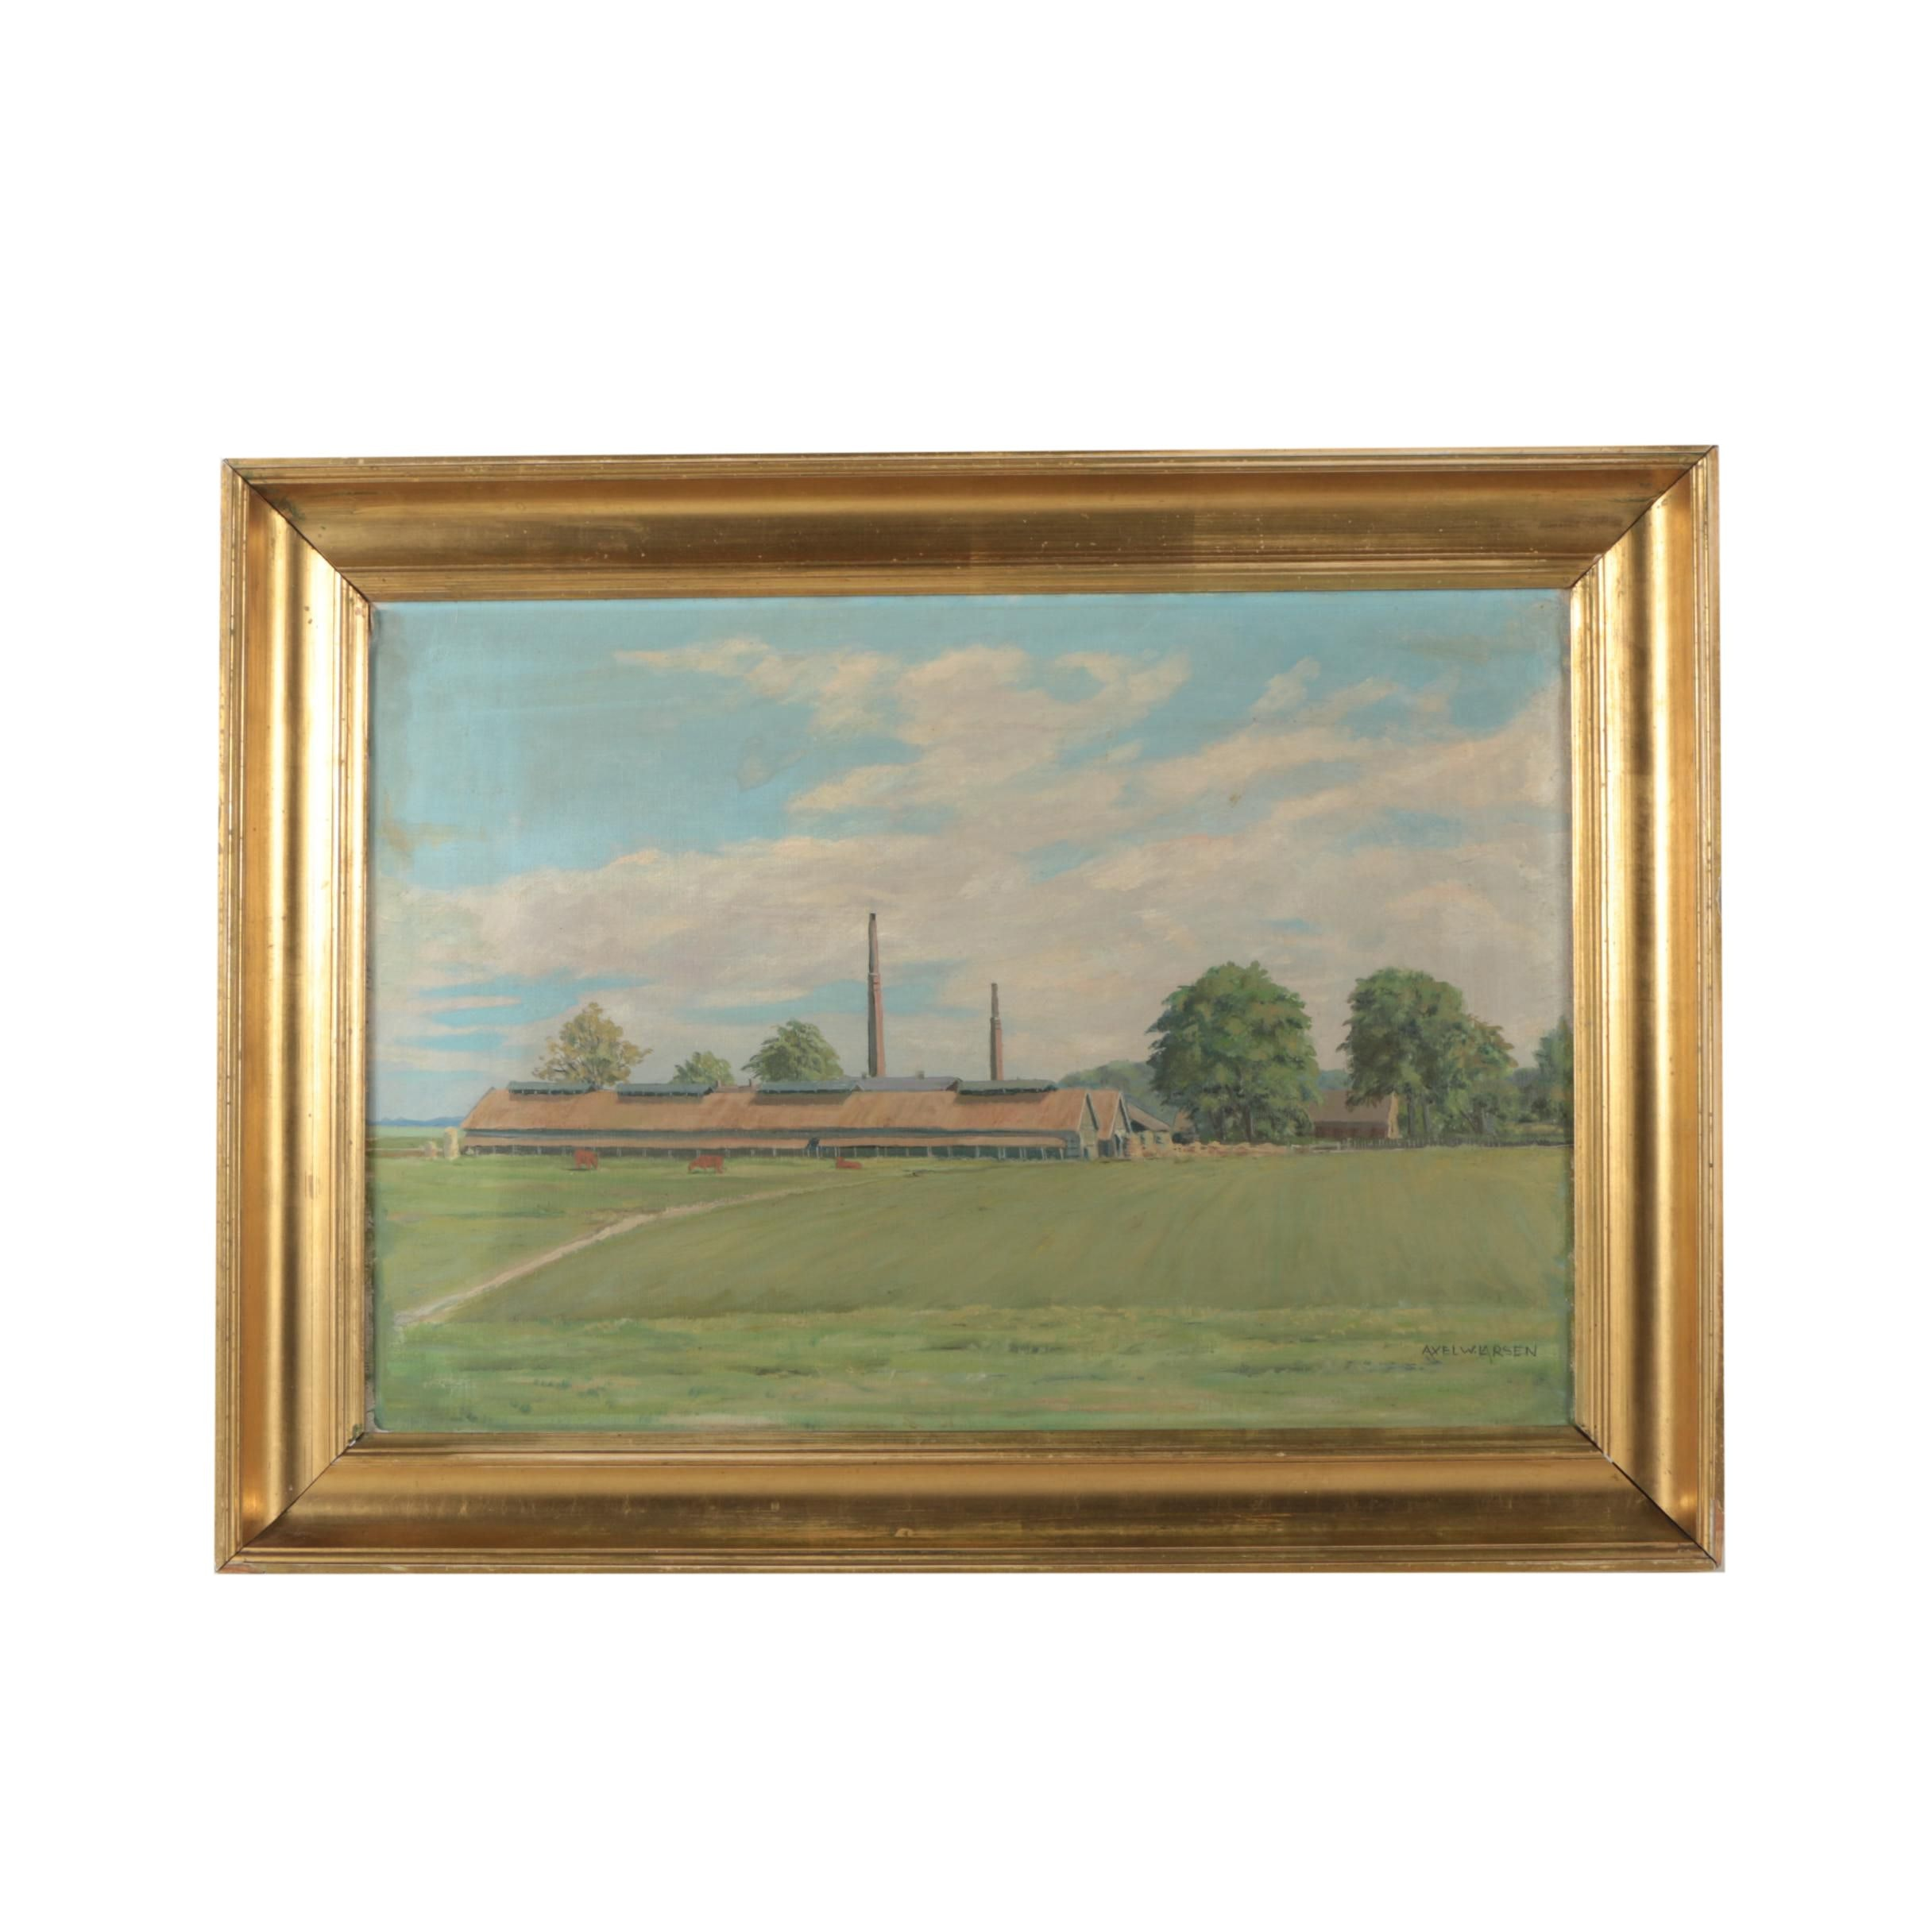 Axel W. Larsen Oil Painting of Commercial Farm